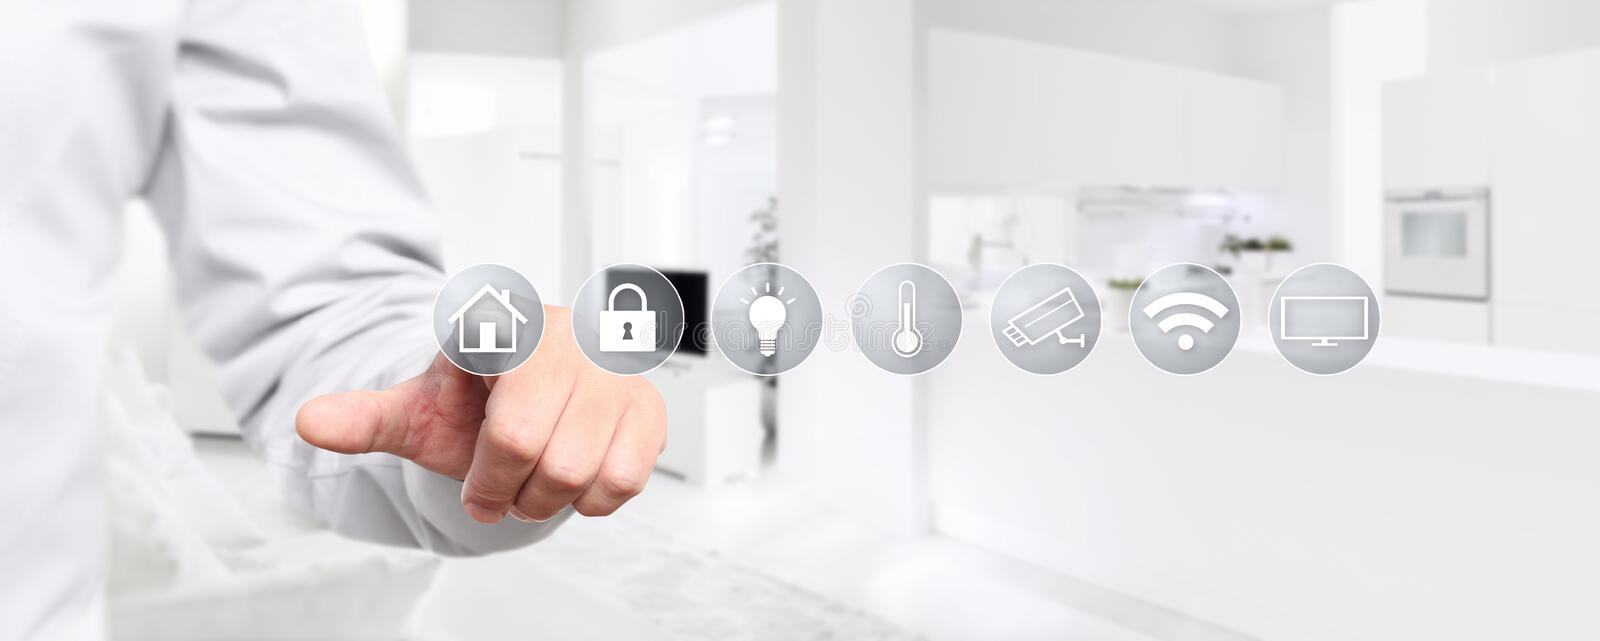 Smart home automation hand touch screen with symbols on interior royalty free stock photo